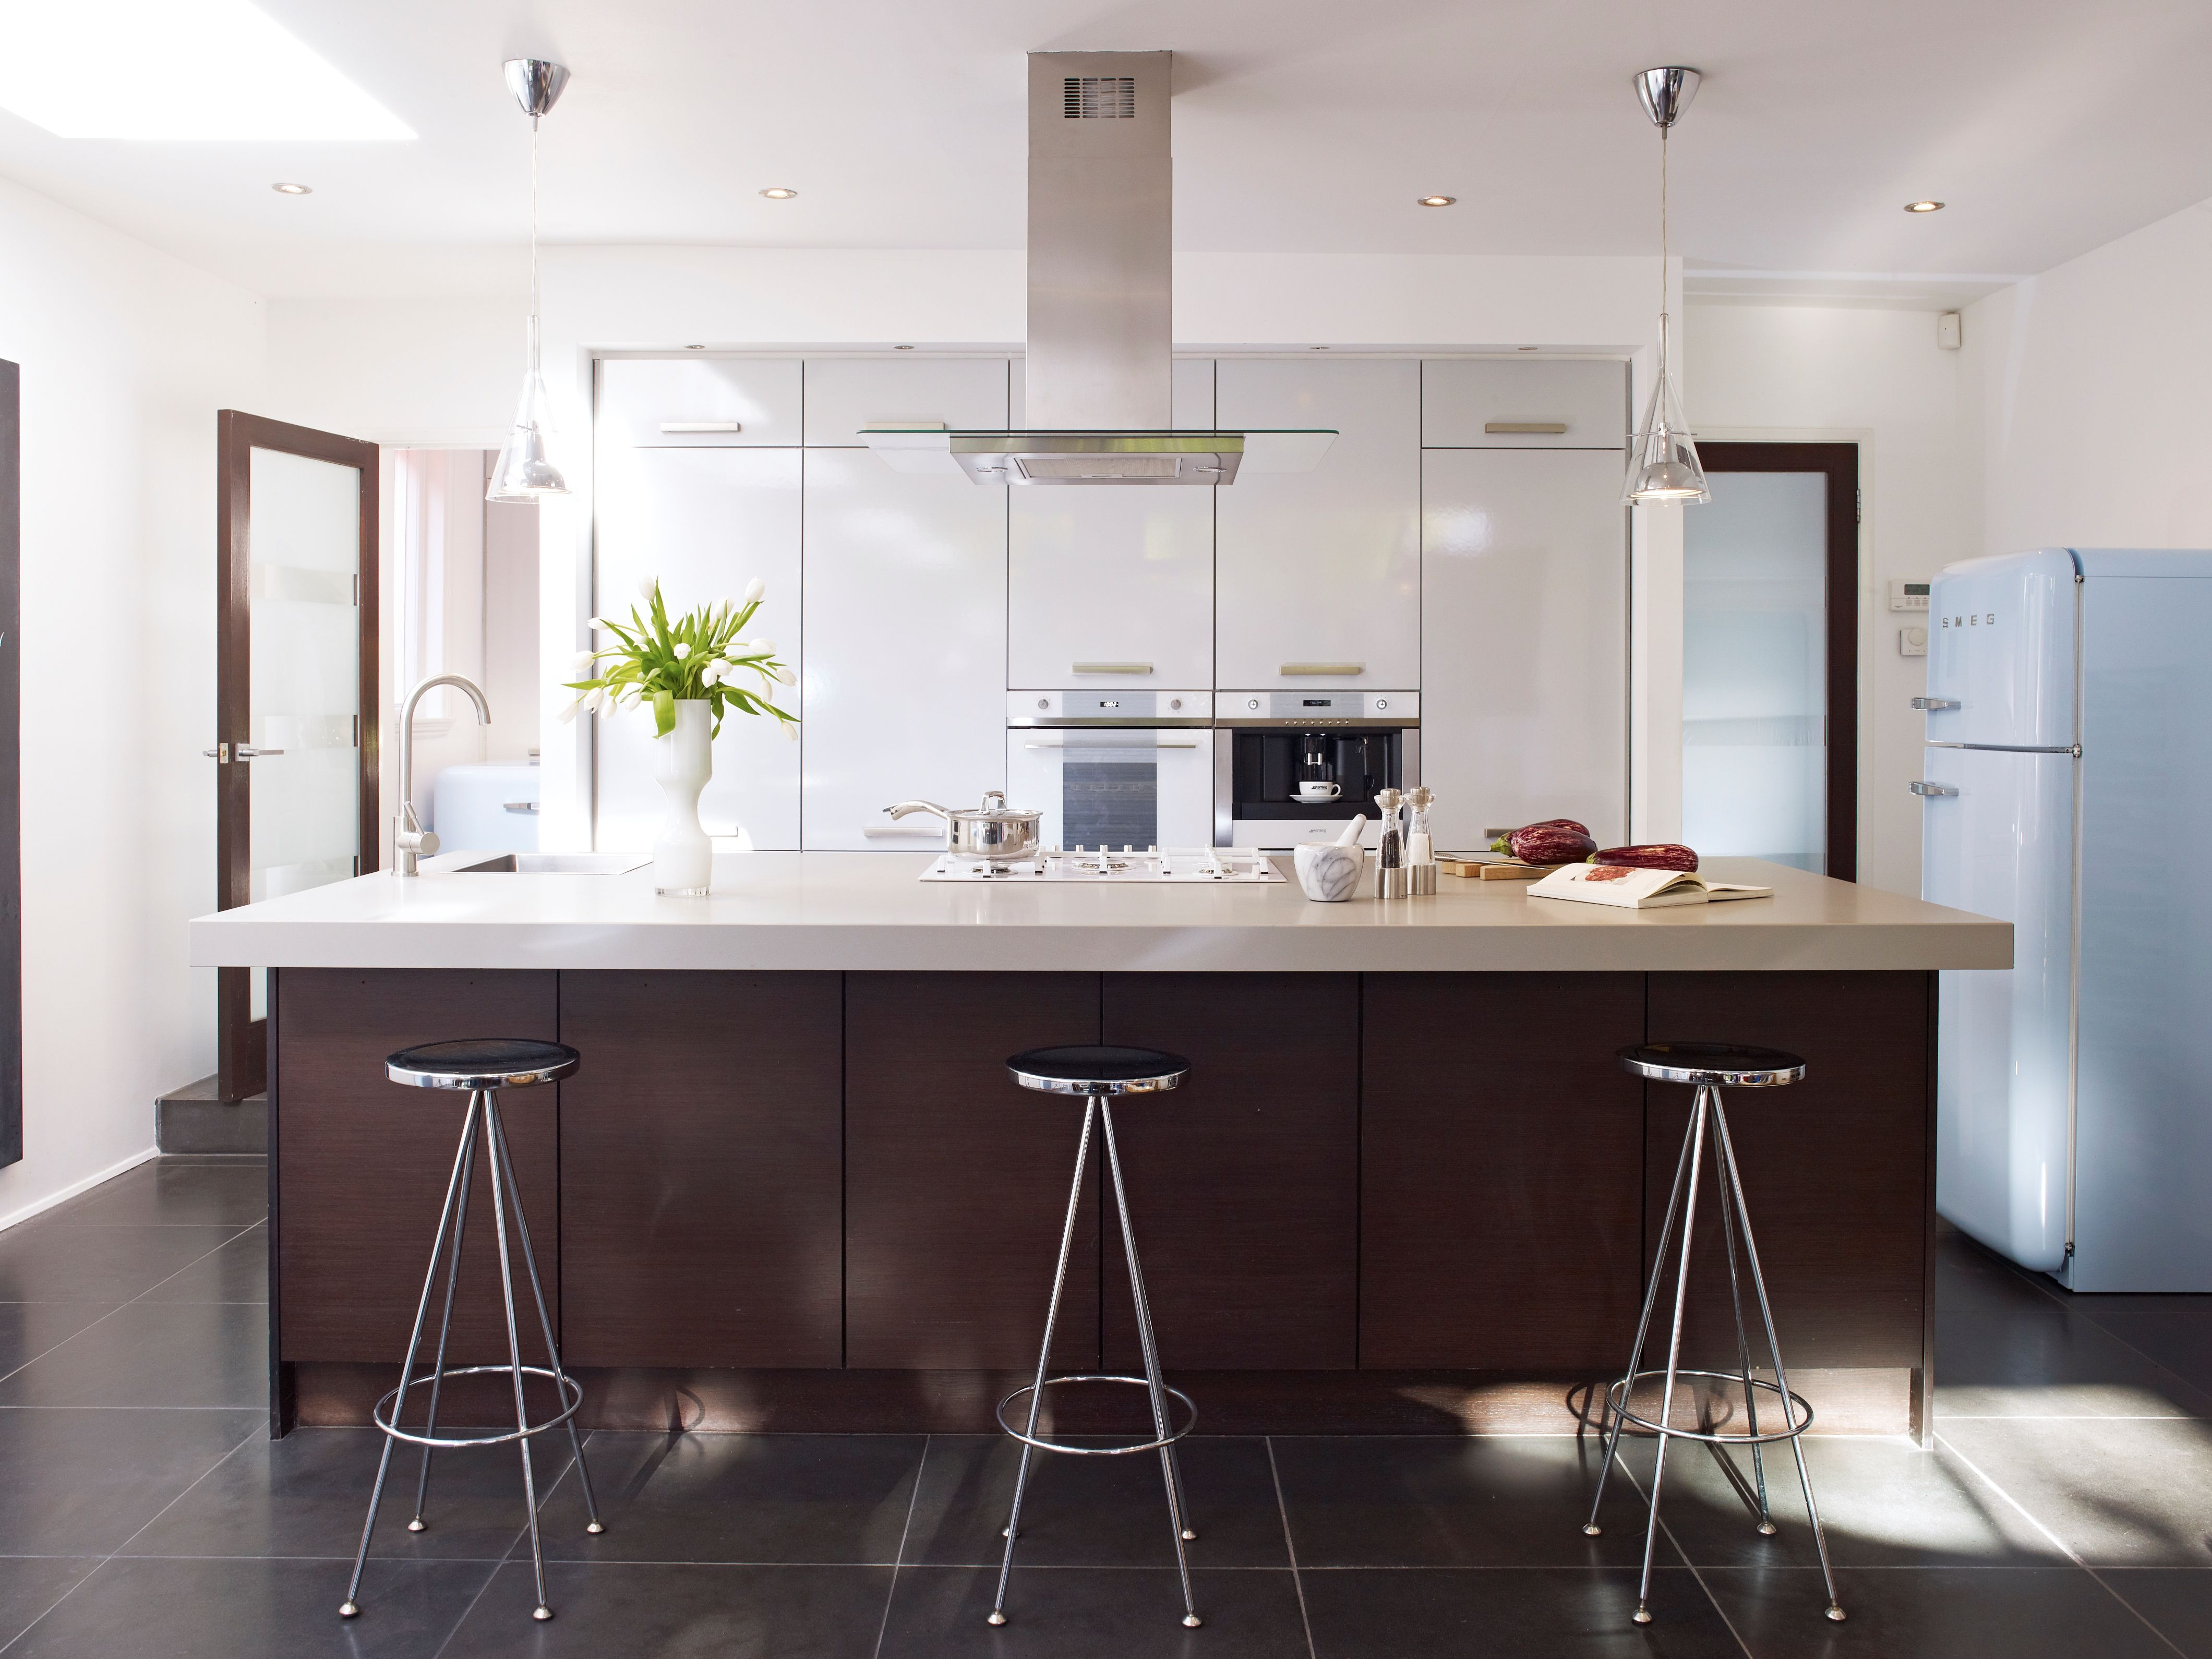 Kitchen Setting Smegs Retro Appliances Work Well In An Ultra Modern Kitchen